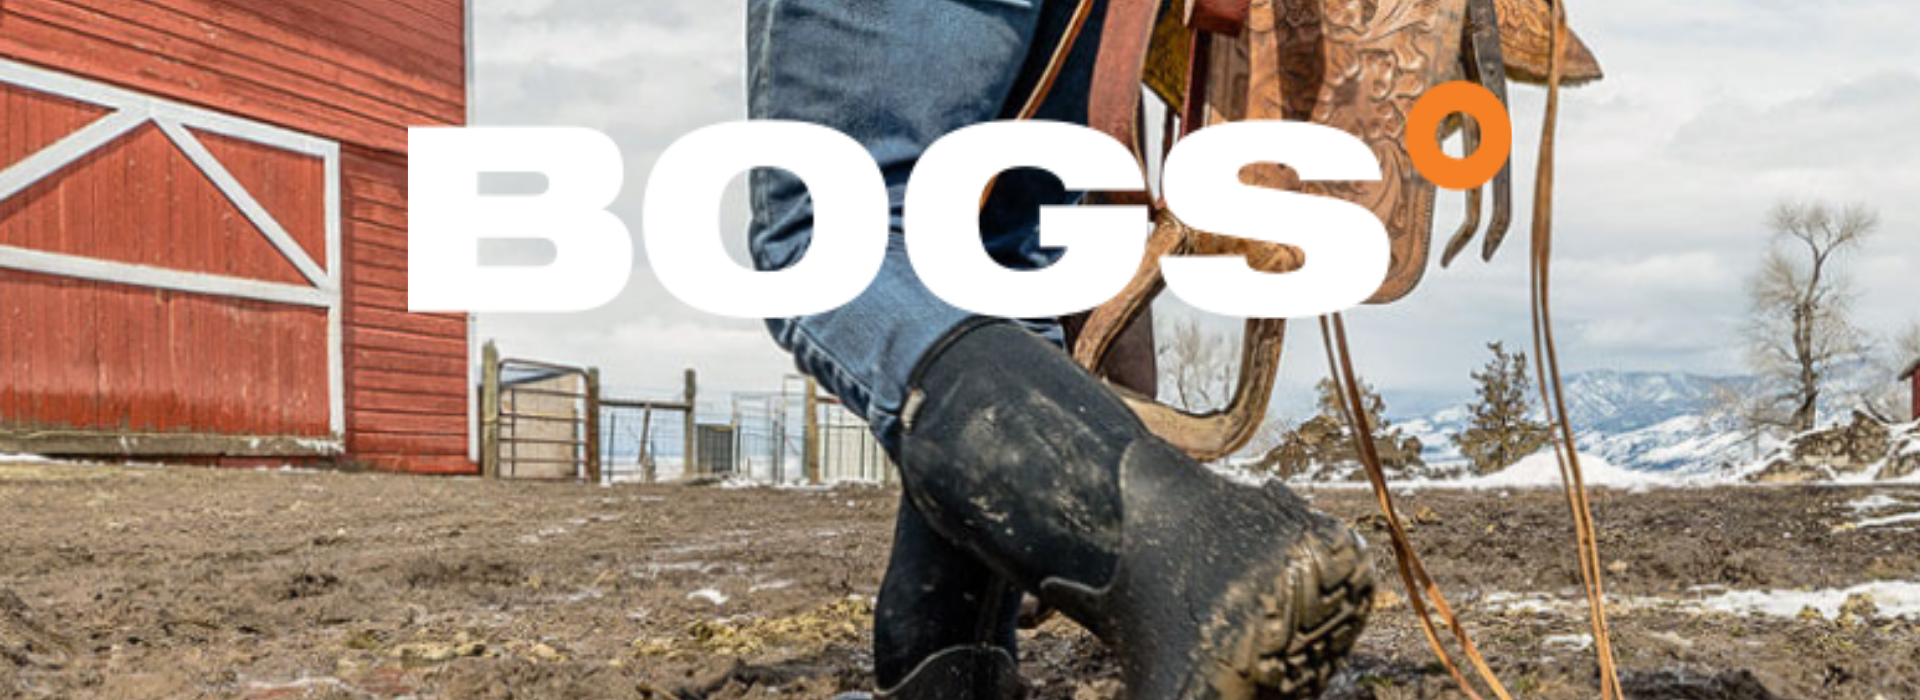 bogs-brand-banner.png